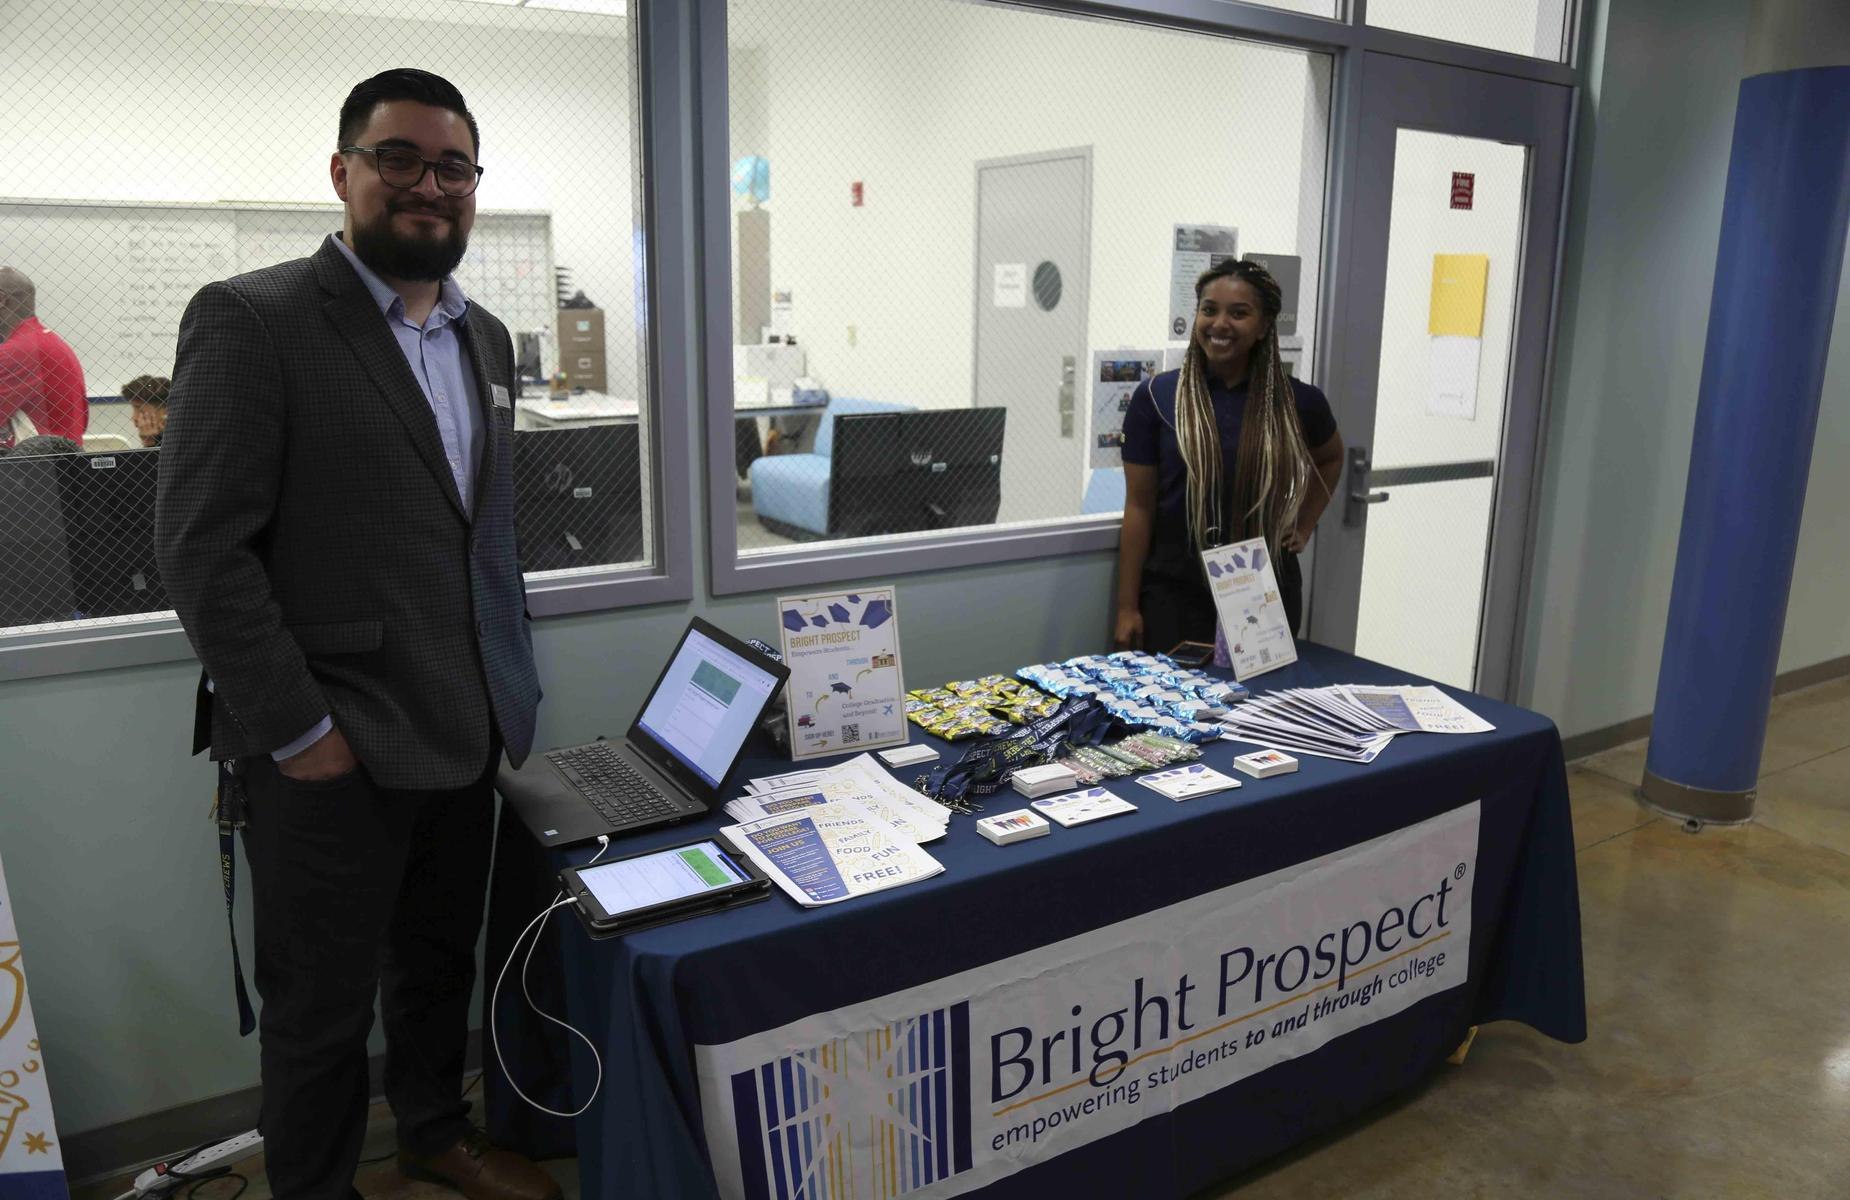 """The PUSD/PABSE #AfricanAmericanMale summit was amazing! This year's theme """"The Marathon Continues"""" Shout-out to the @Bright_Prospect team for empowering our youth and making sure they are college bound! #proud2bepusd"""